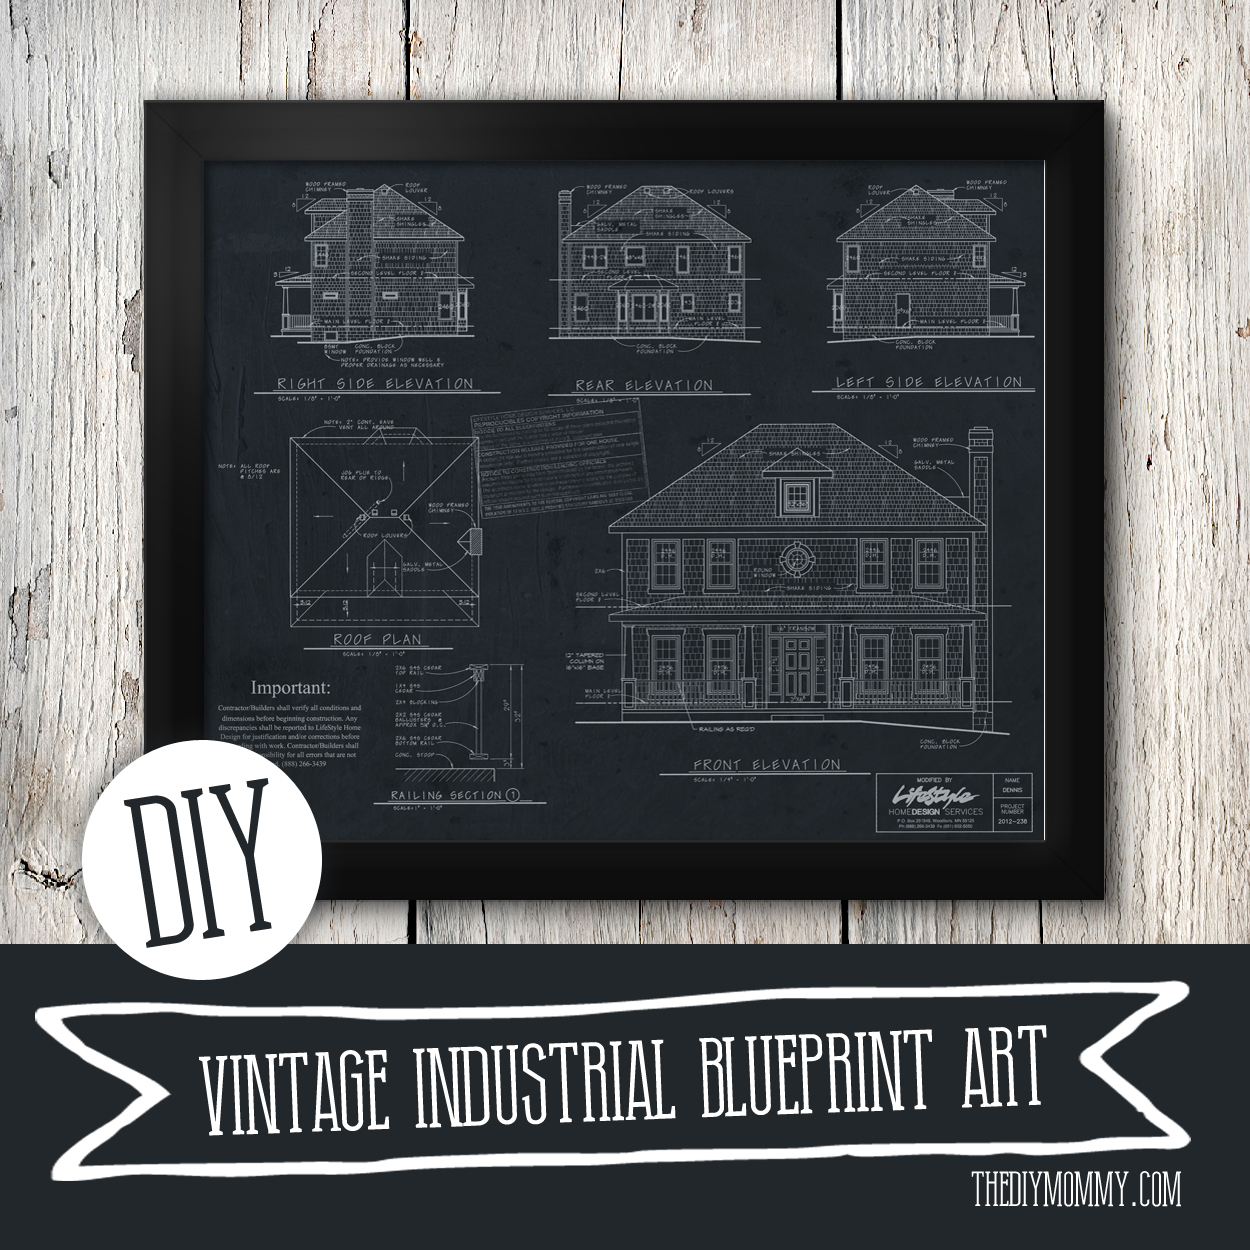 Make vintage blueprint artwork from your house plan with photoshop how to make restoration hardware inspired vintage blueprint artwork from your house plan malvernweather